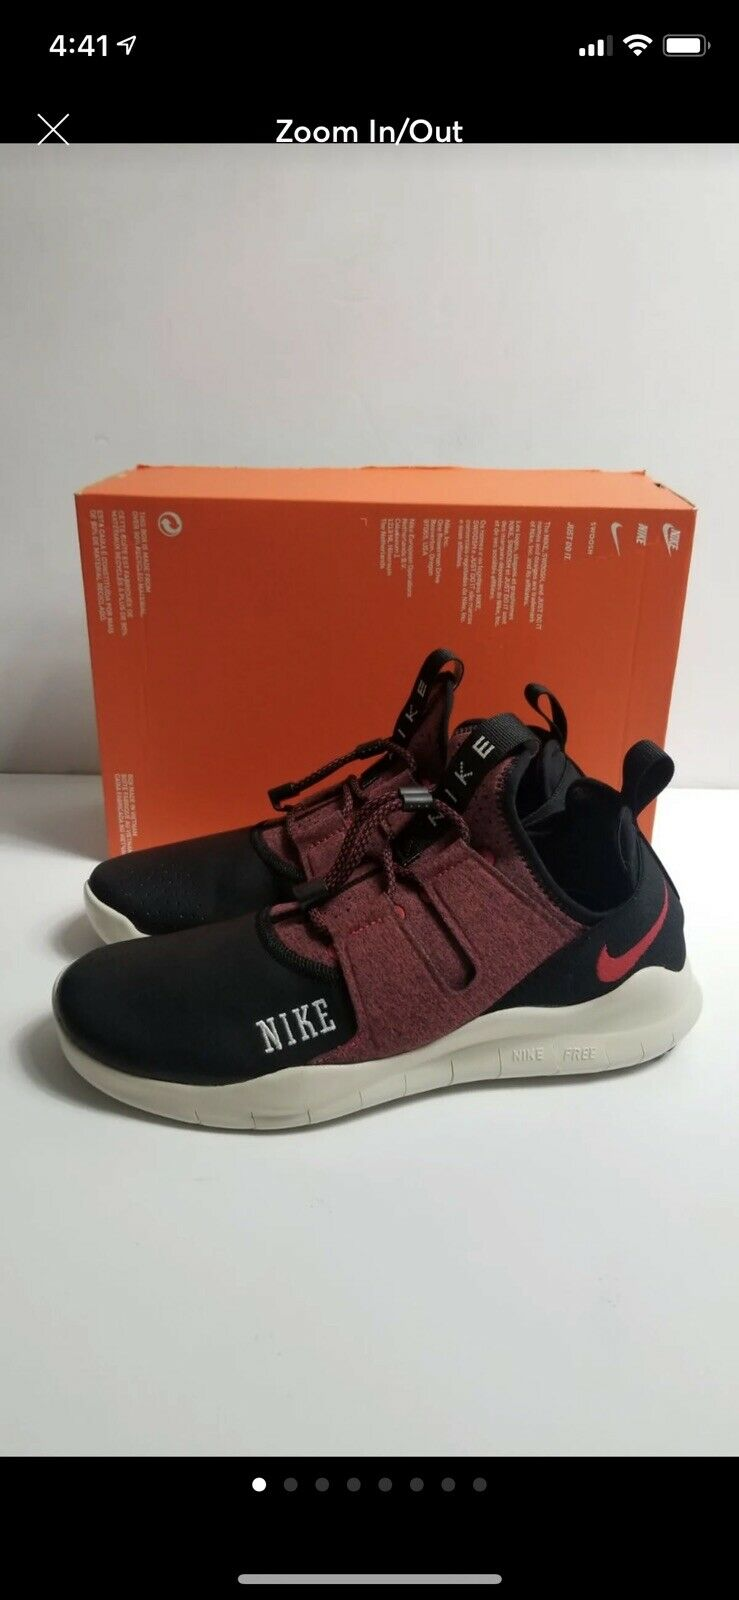 Nike Air Commuter 2018 Men's Size 10 NEW